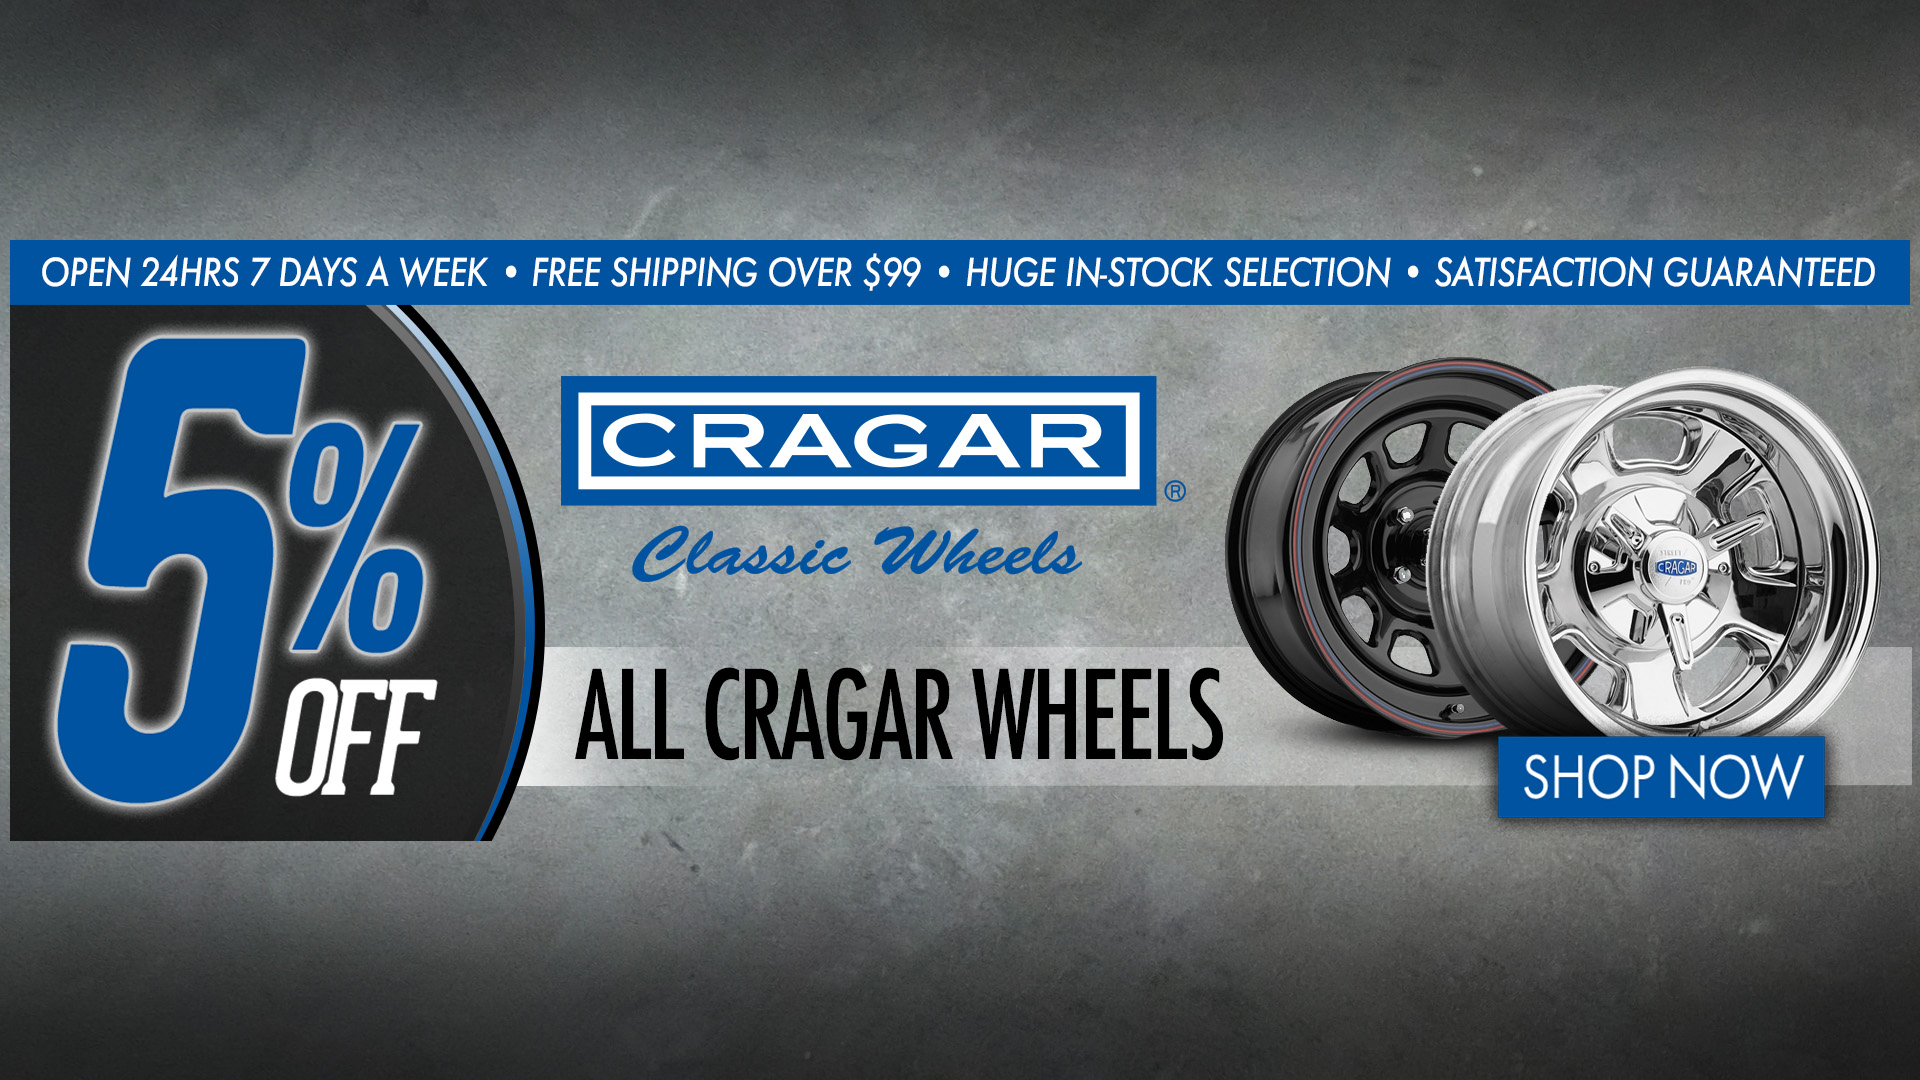 Save 5% on All Cragar Wheels